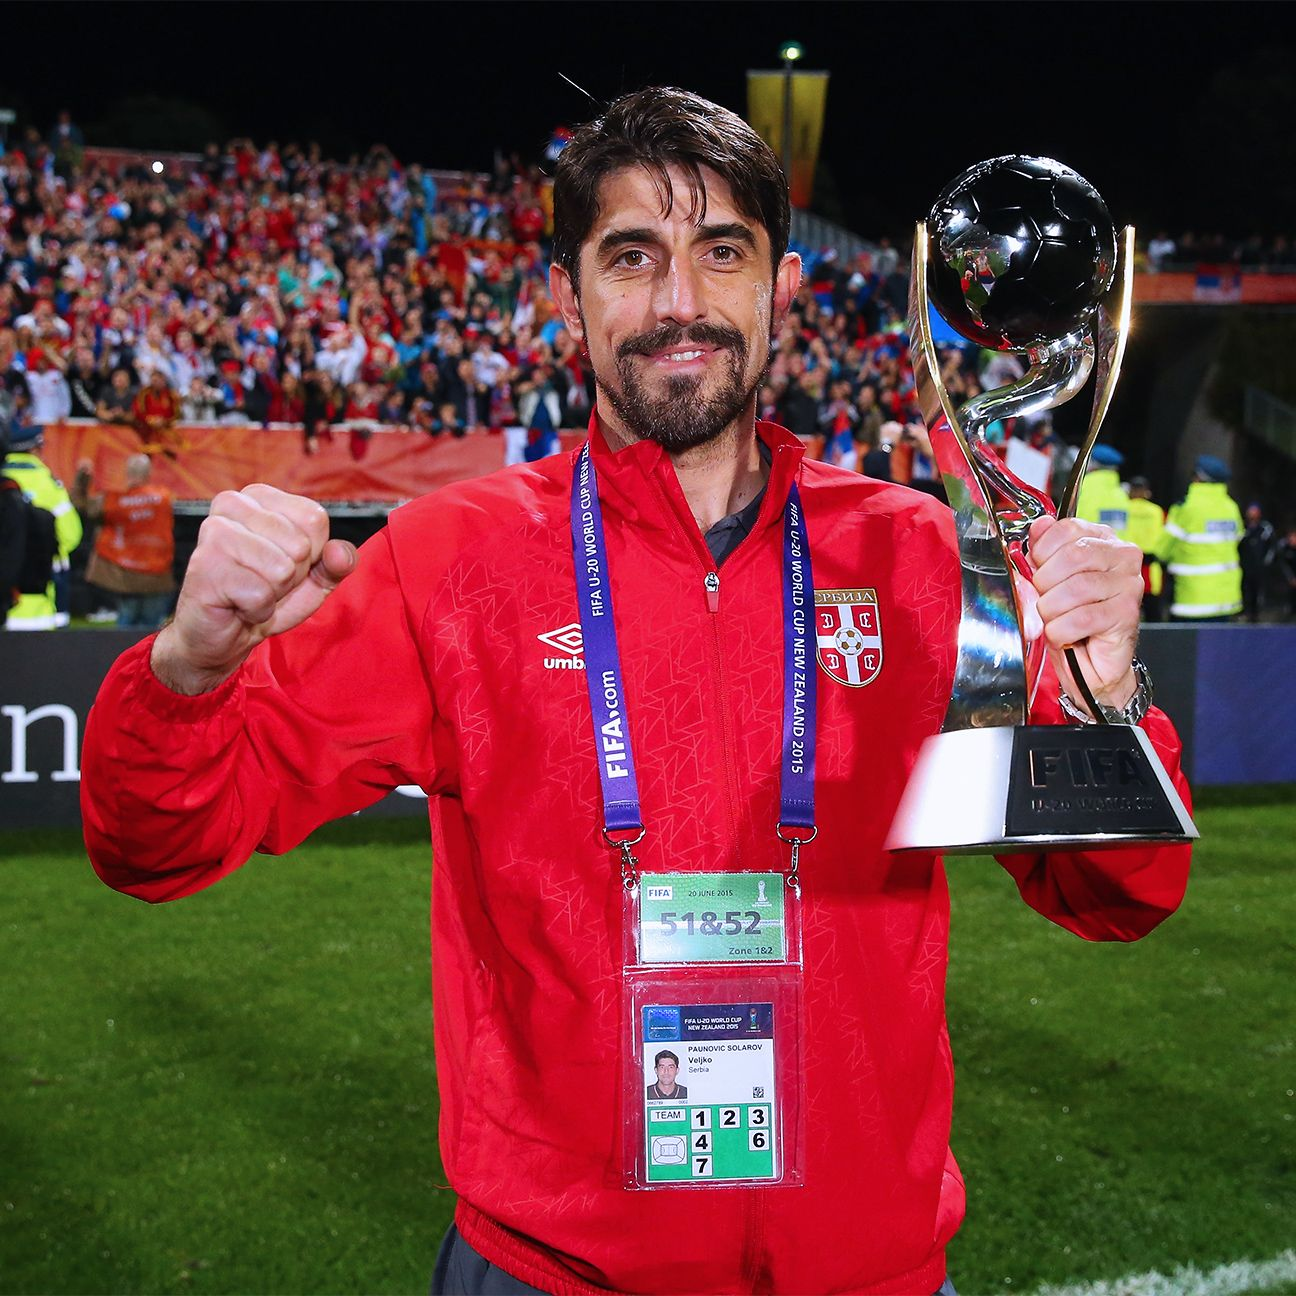 Serbian football is on the rise thanks to under-20 World Cup-winning manager Veljko Paunovic.